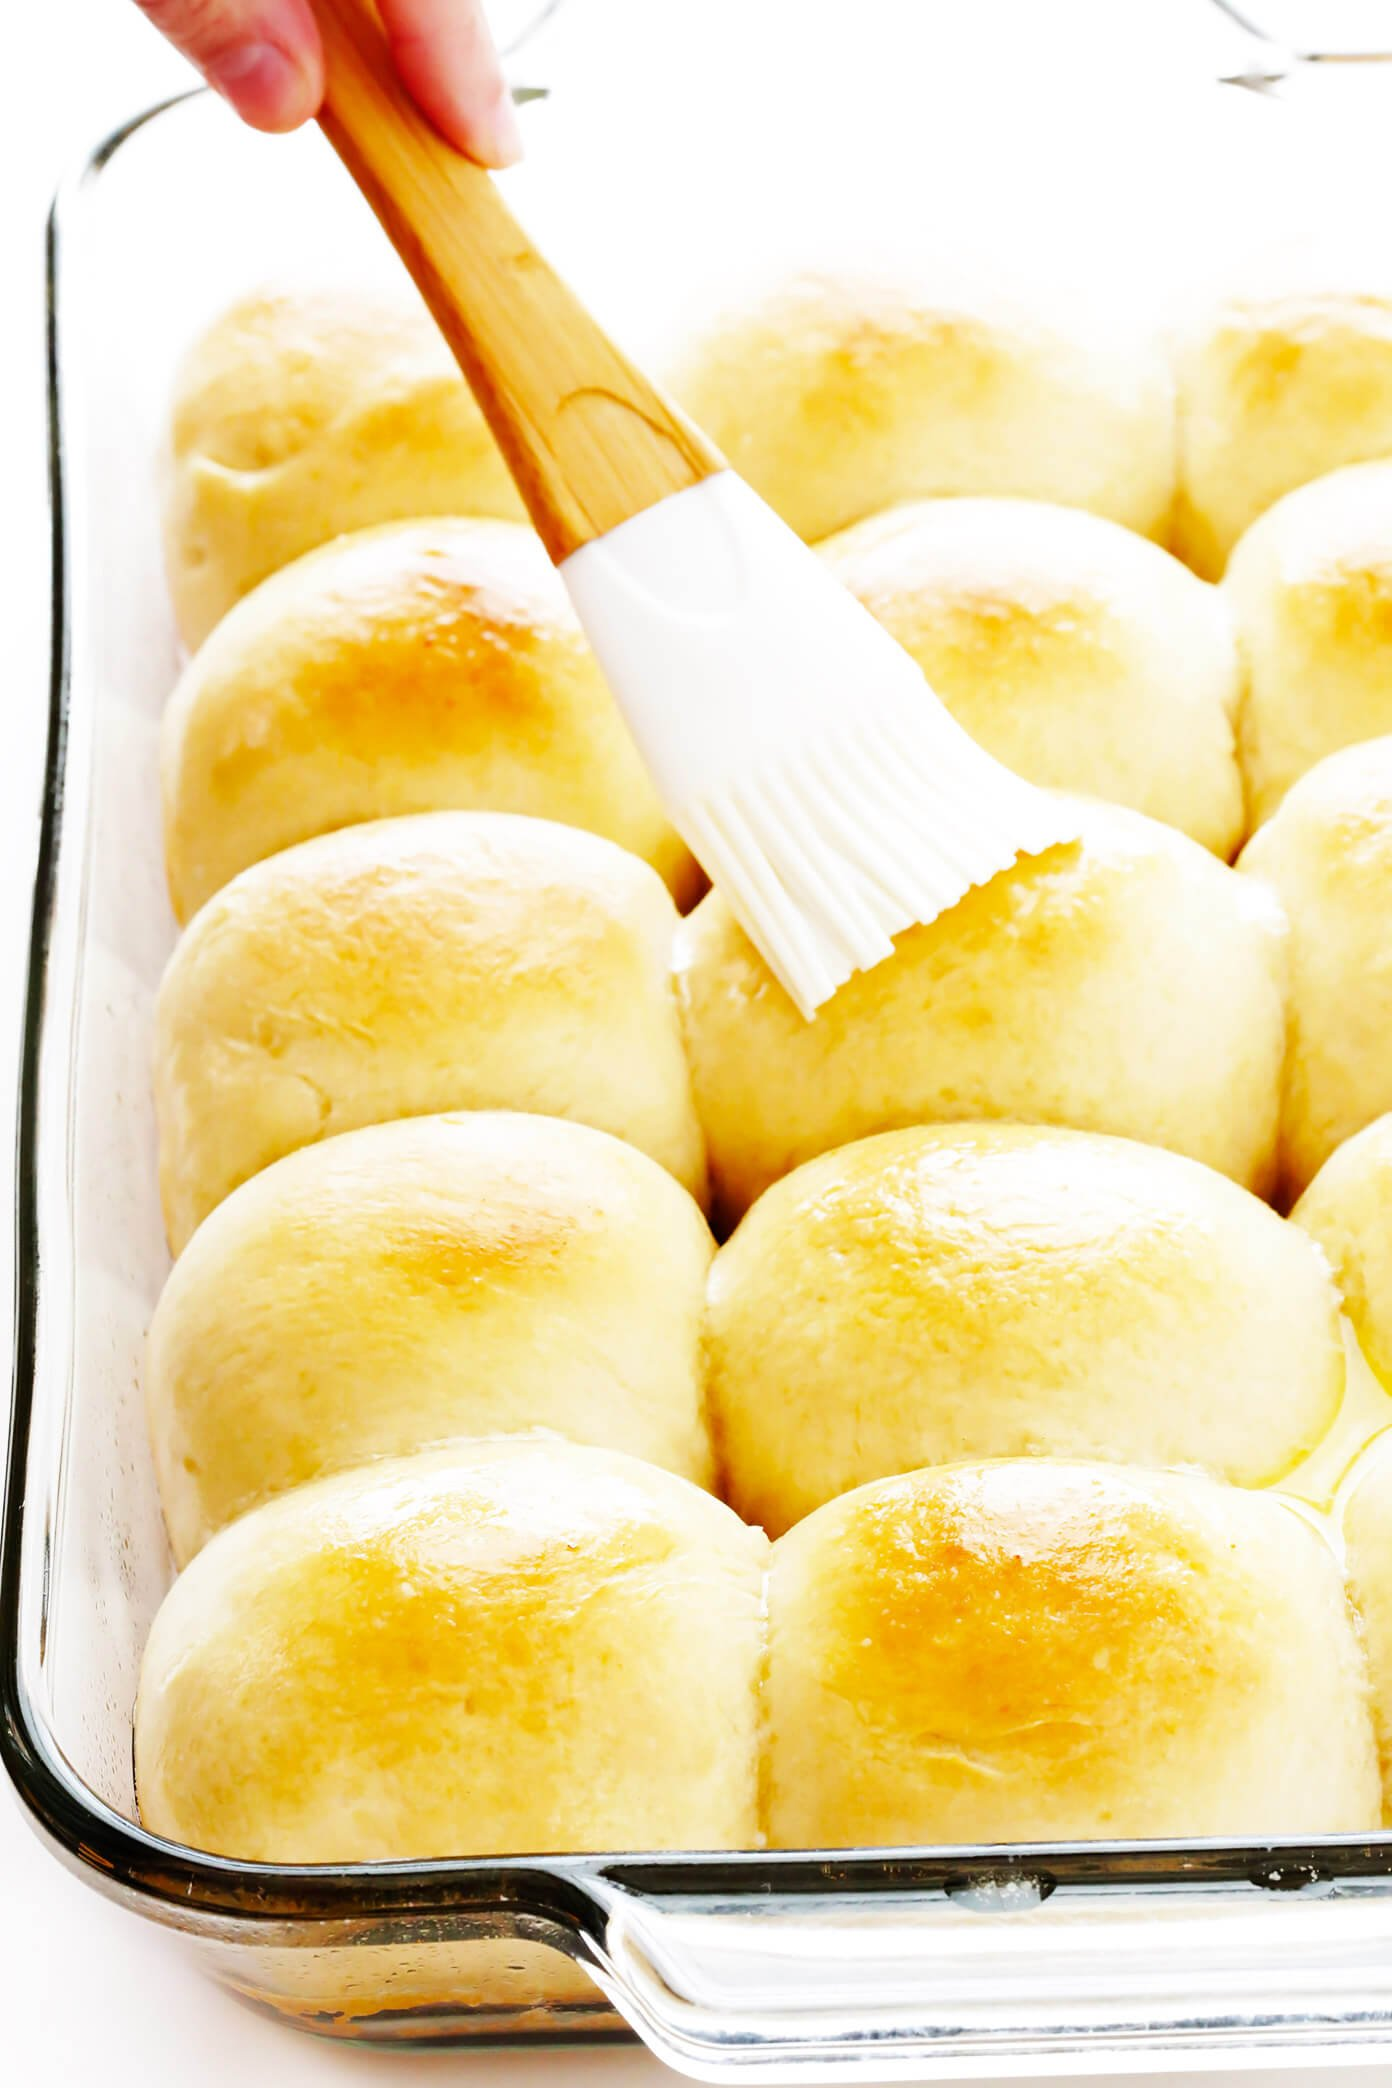 Brushing Dinner Rolls with Melted Butter